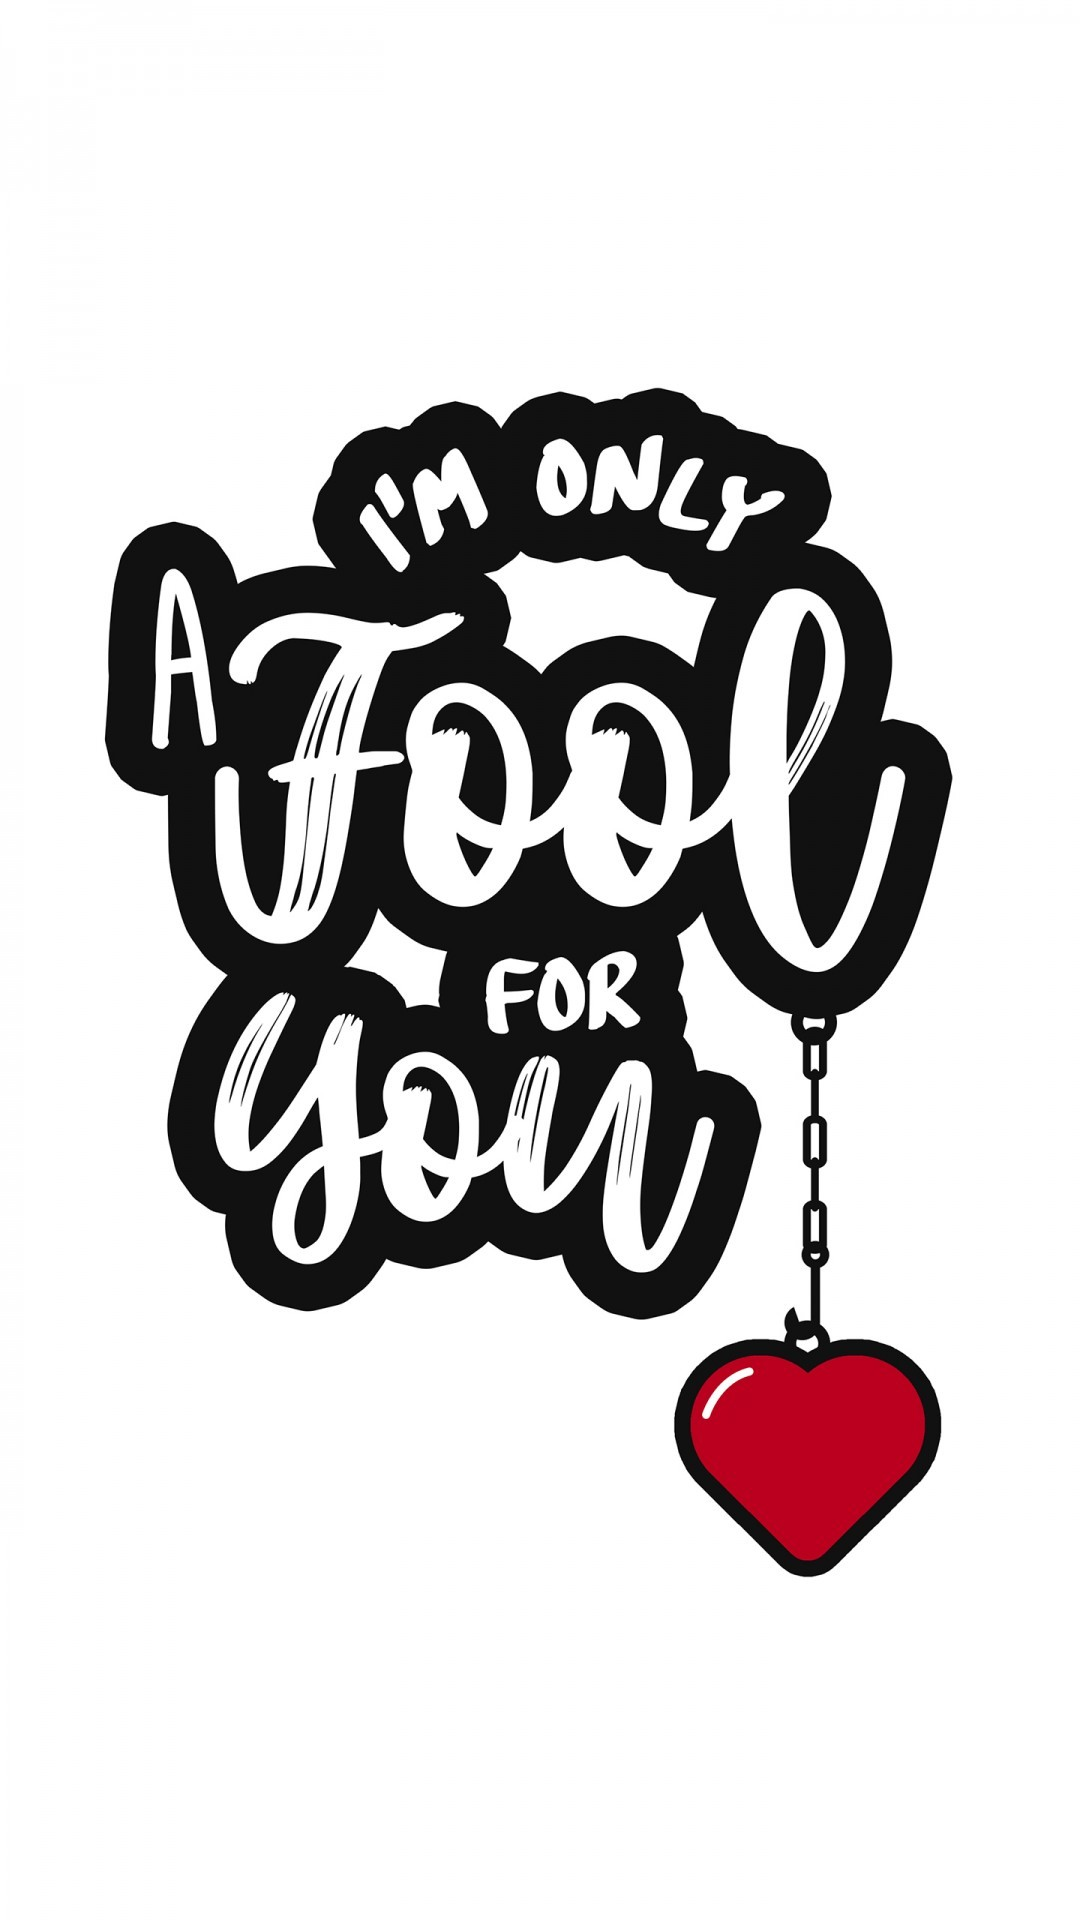 Free I am Only a Fool For You Quote phone wallpaper by tashja